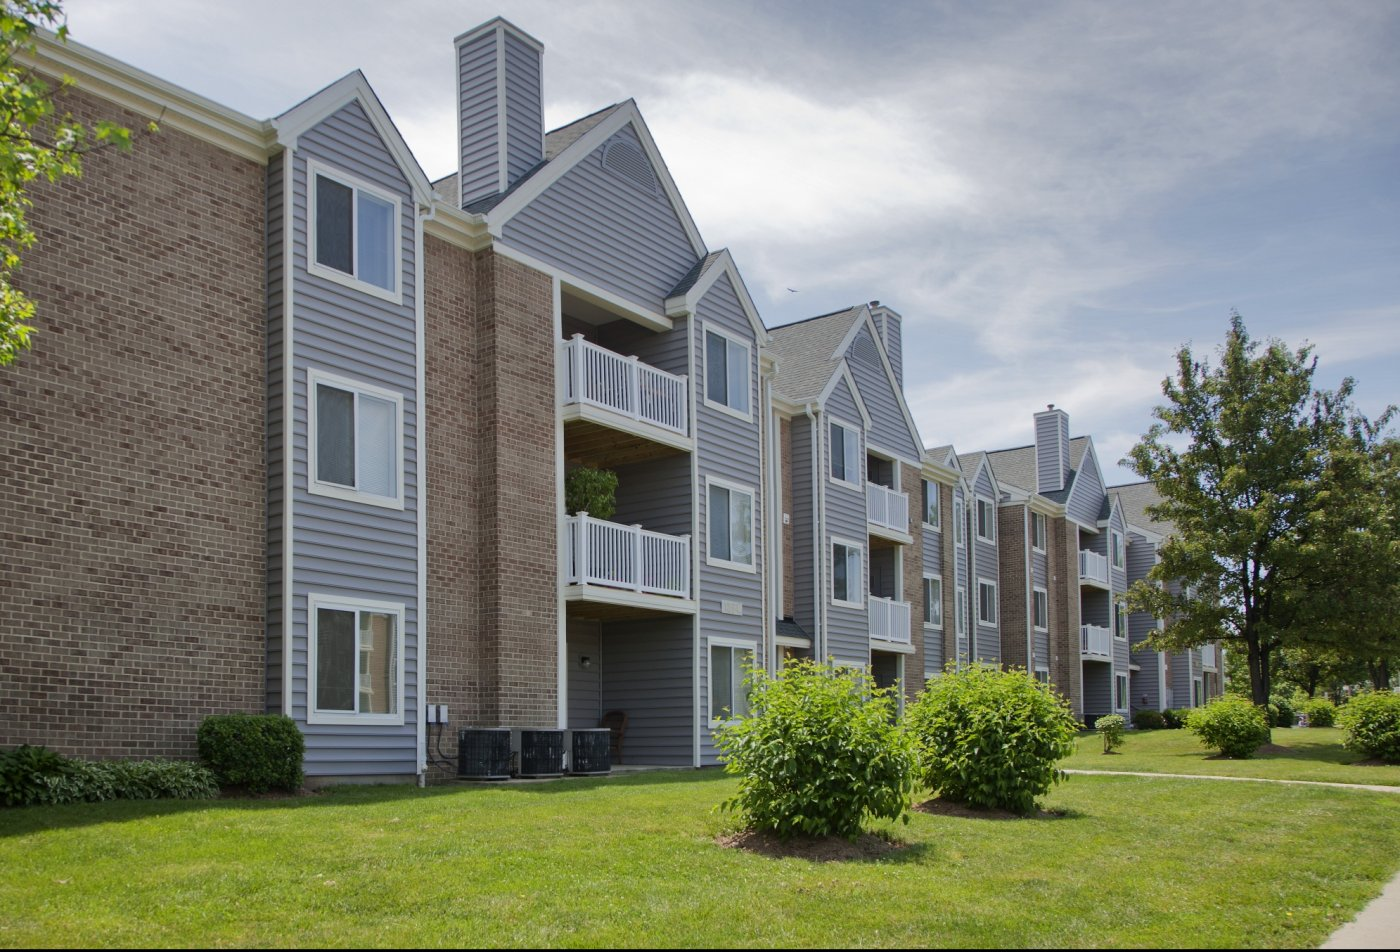 3 Bedroom Apartments In Woodbridge Va Springwoods At Lake Ridge Apartment Homes Apartments For